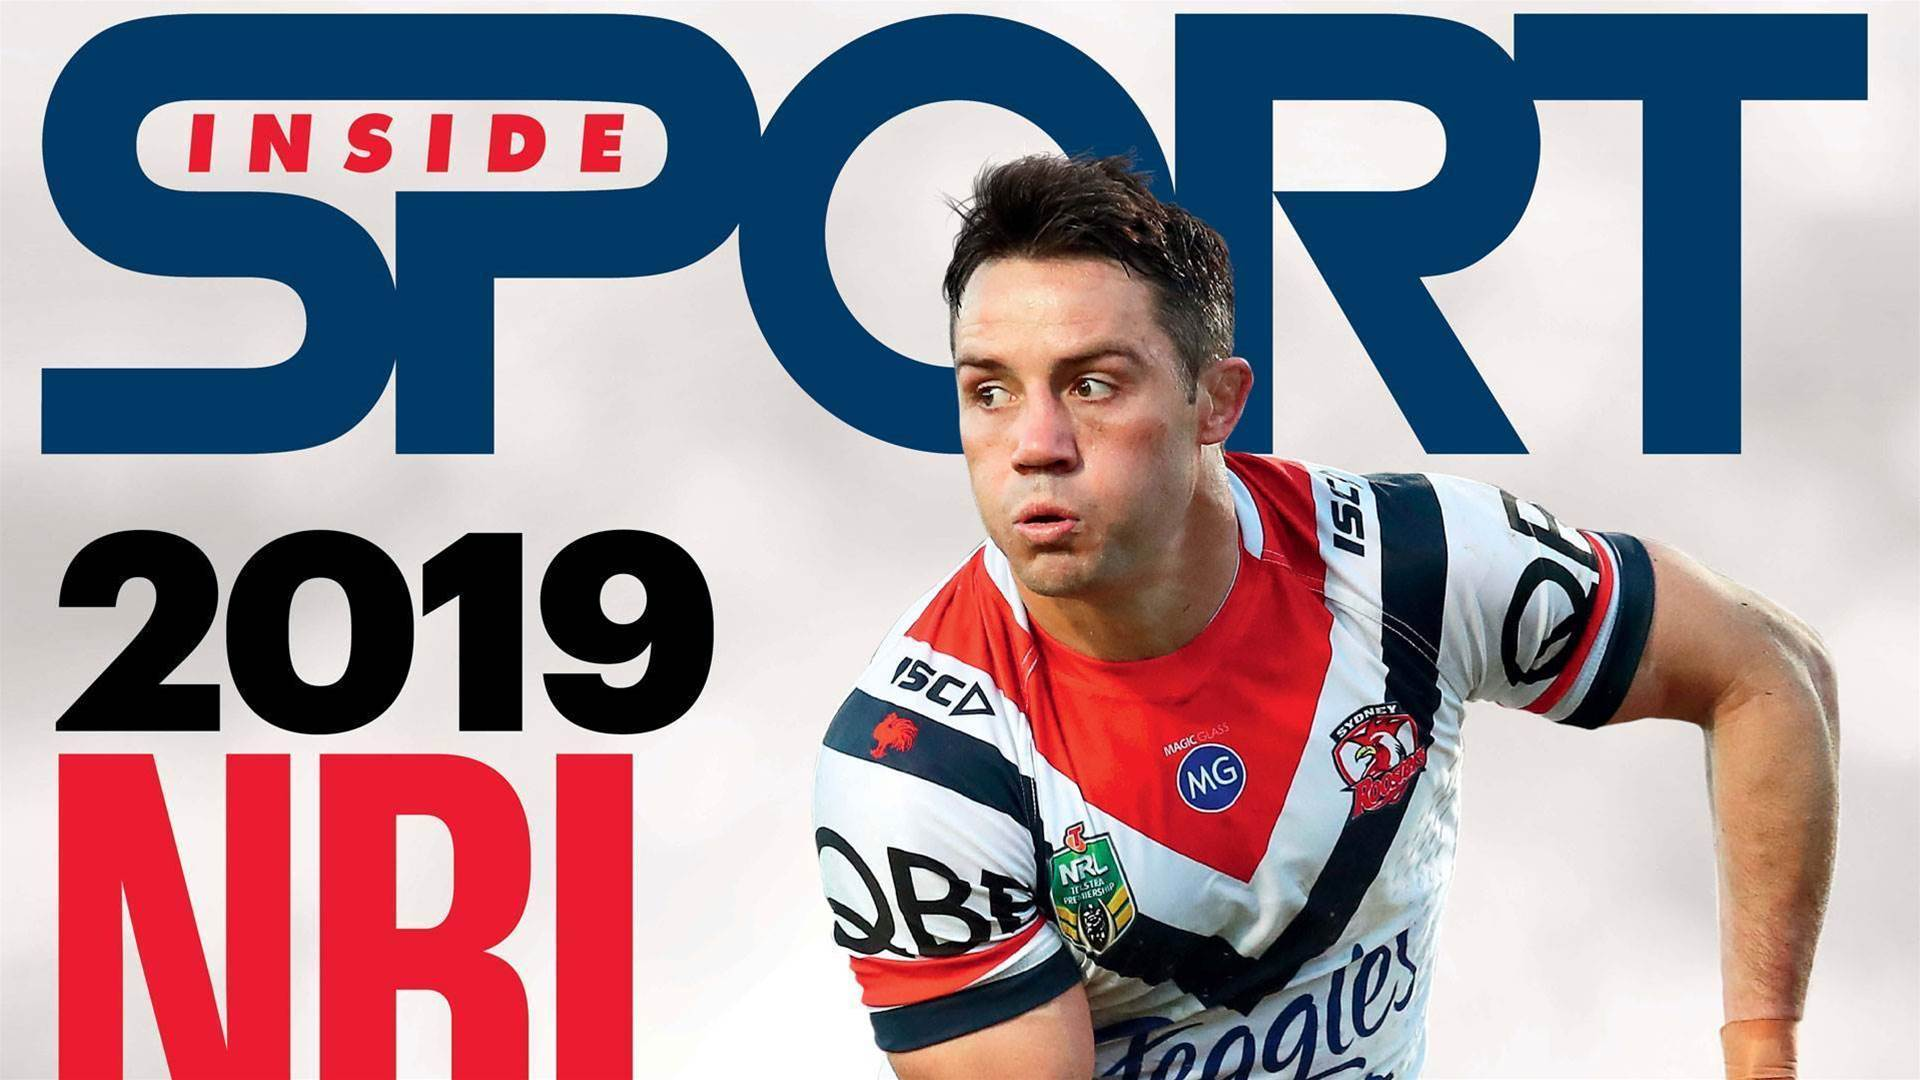 Inside Sport's 2019 NRL season preview edition on sale now